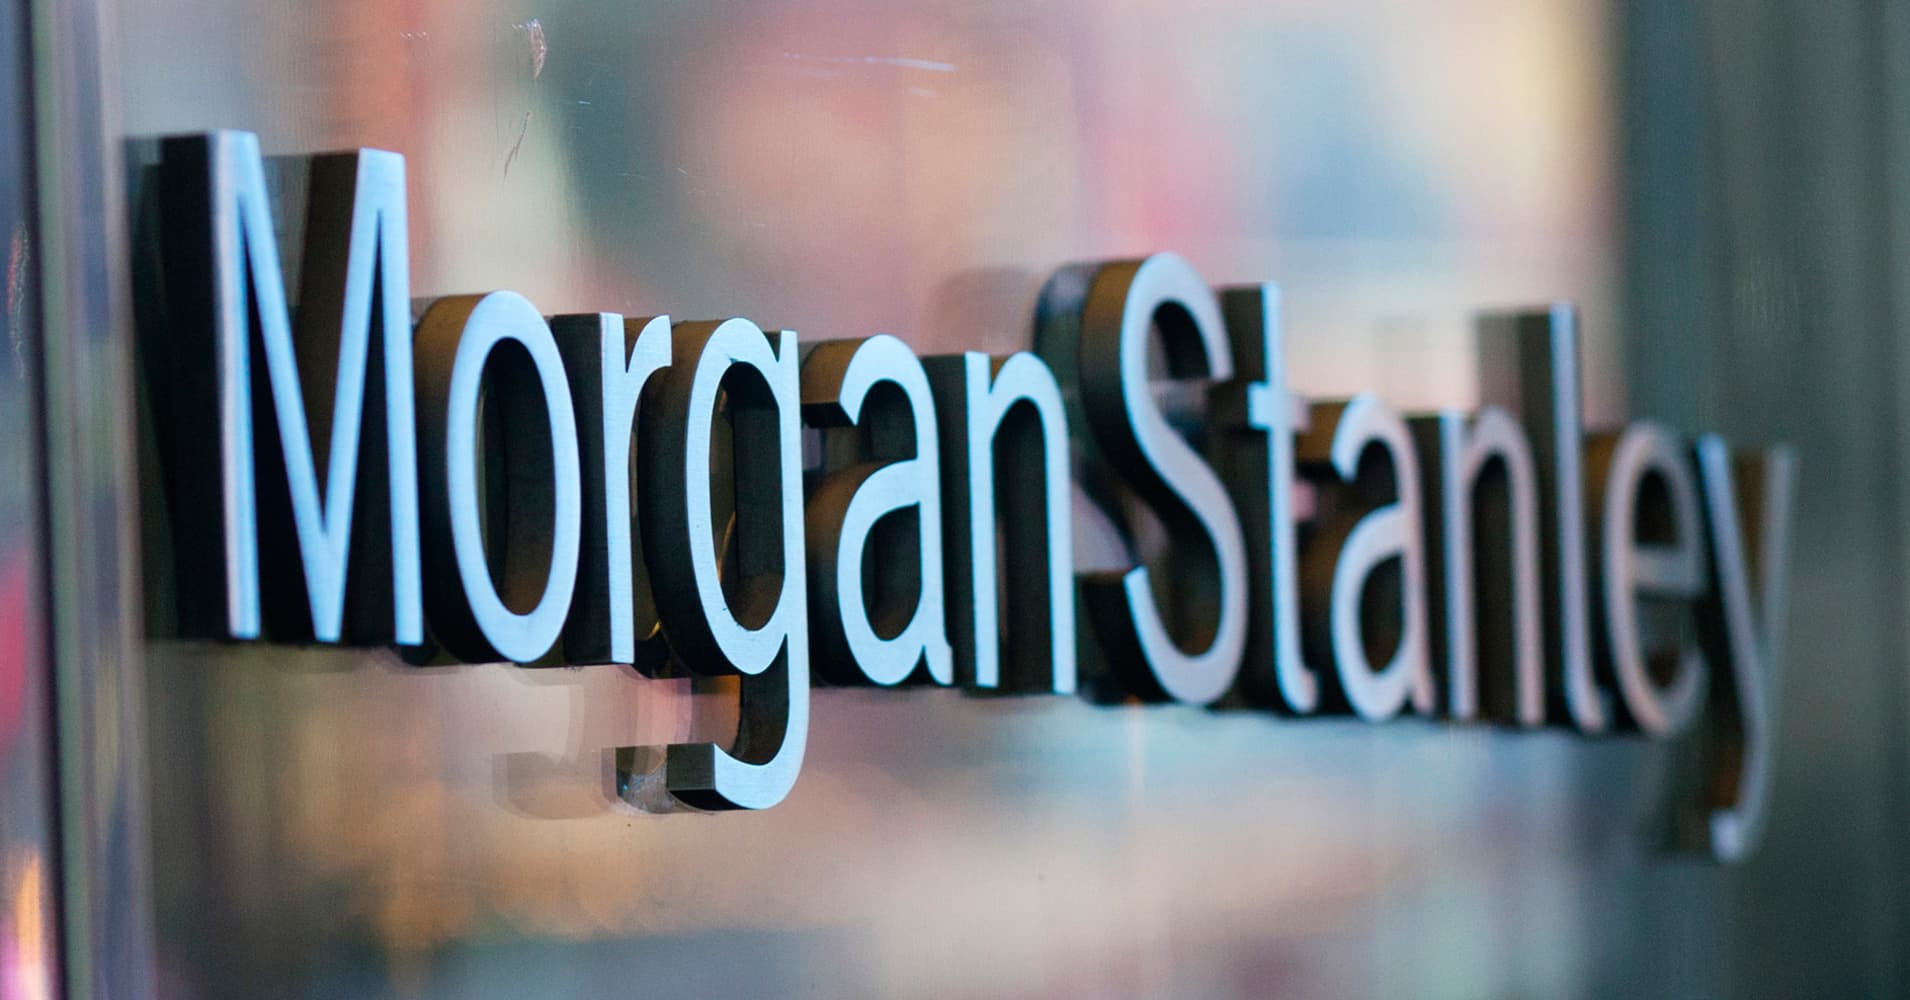 morgan stanley quarterly profit more than doubles